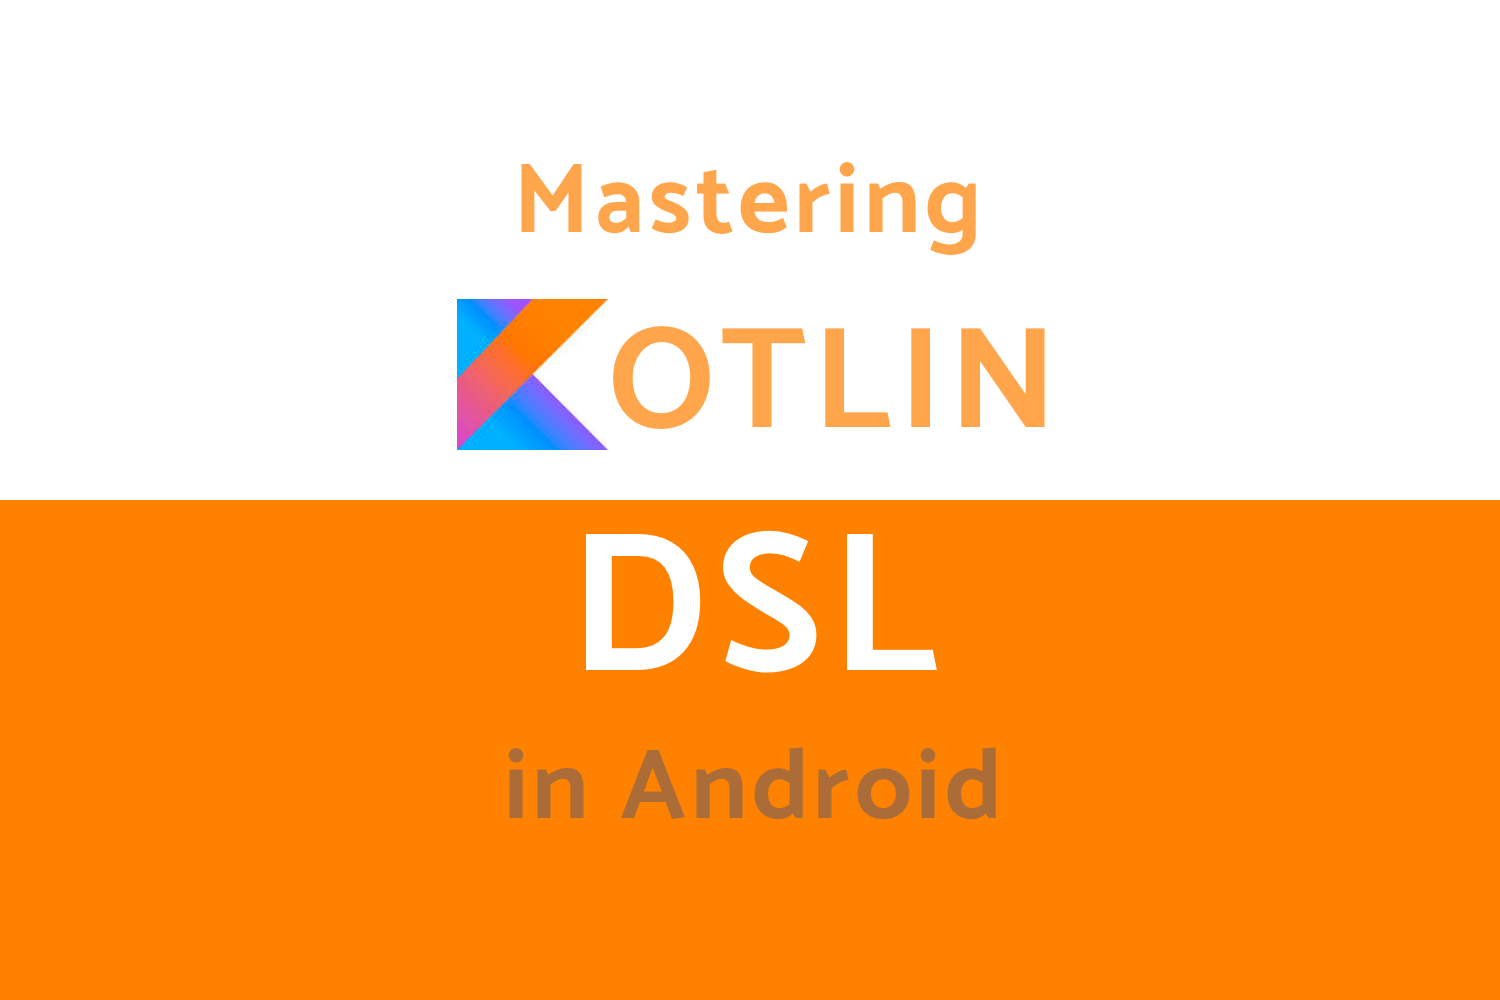 Mastering Kotlin DSL In Android - Step By Step Guide